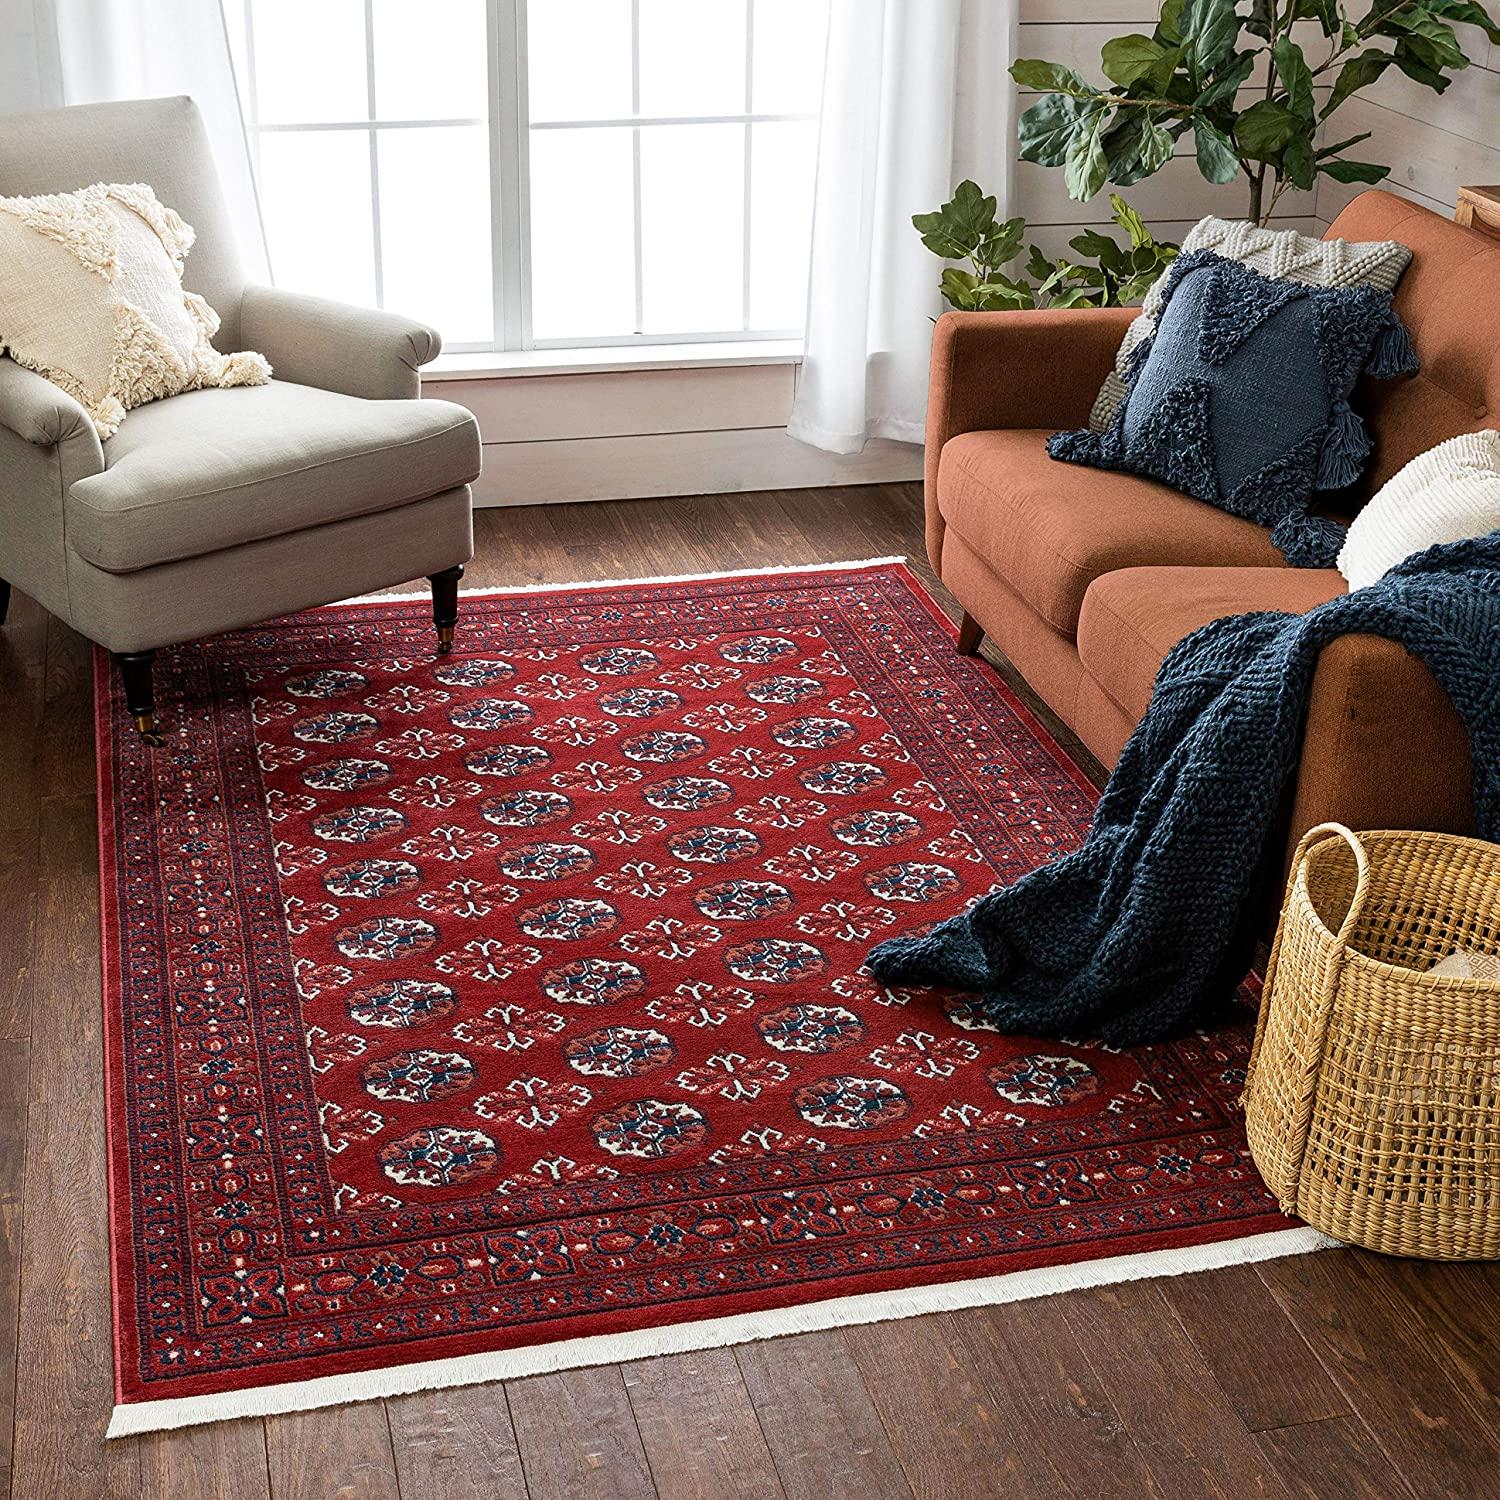 Well Woven Brio Crimson Red Blue Bokhara Tribal Area Rug 5x7 5 3 X 7 3 Home Kitchen